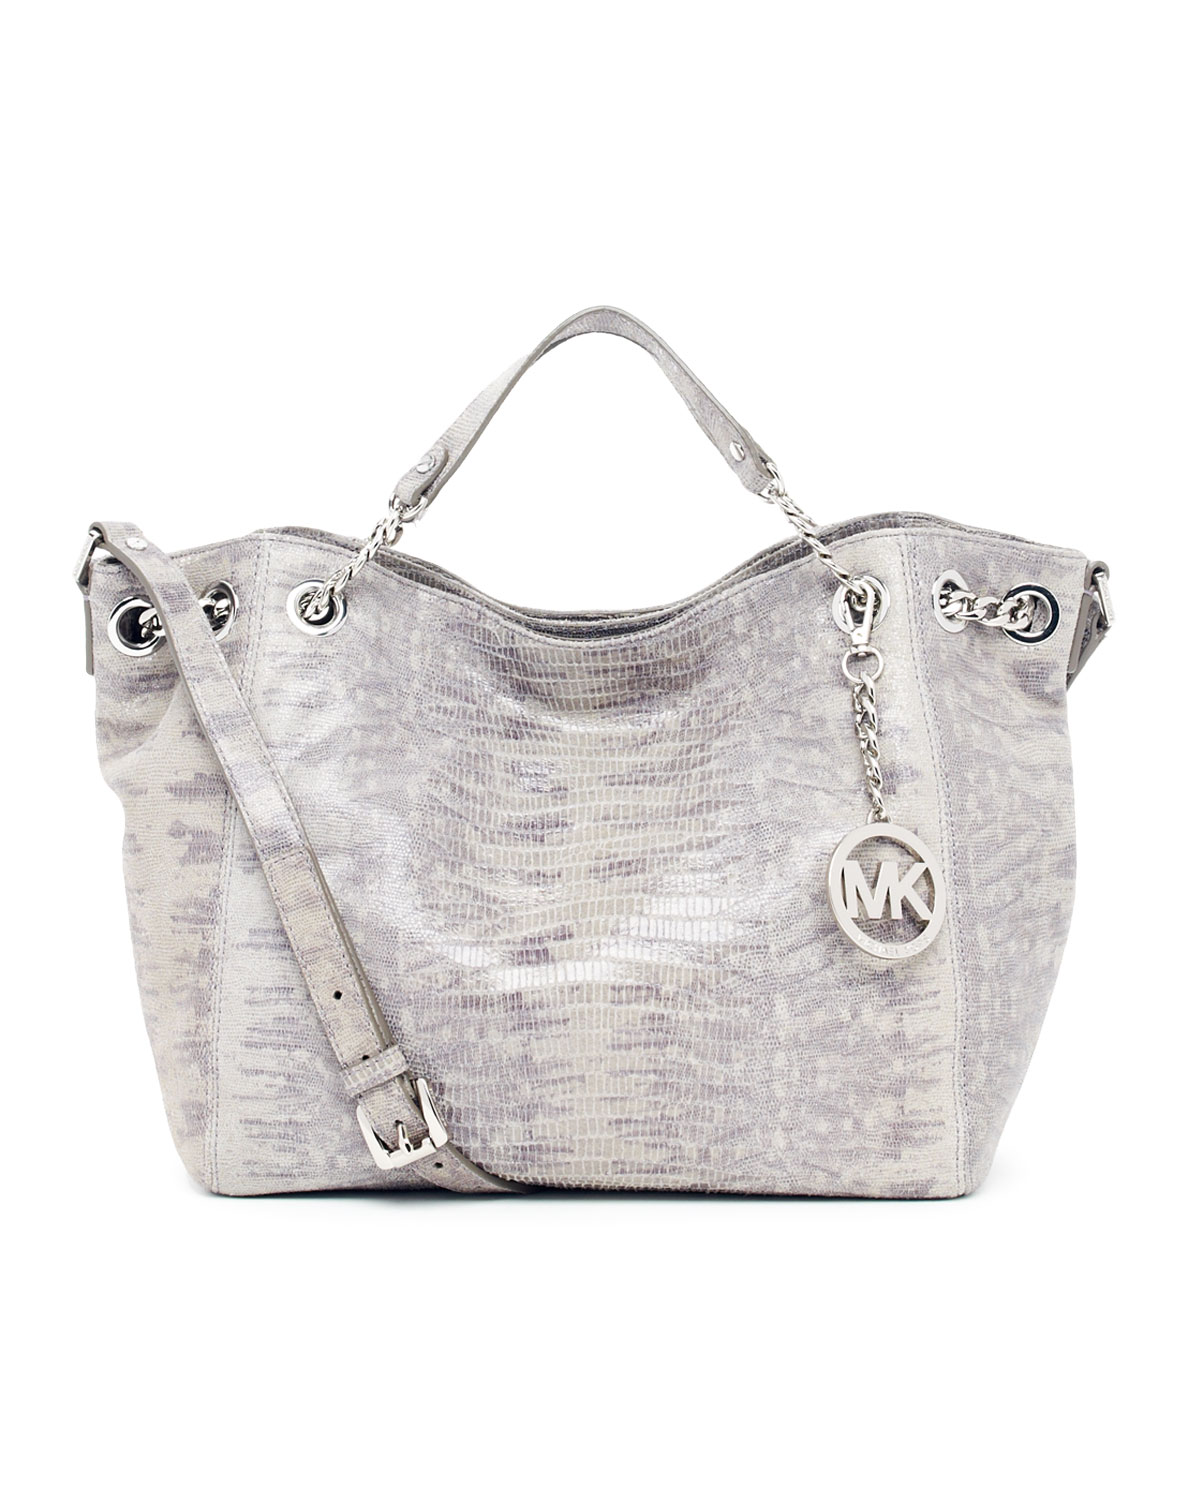 fa6fed558376 ... Lyst - Michael Kors Jet Set Chain Shoulder Tote in Gray ...